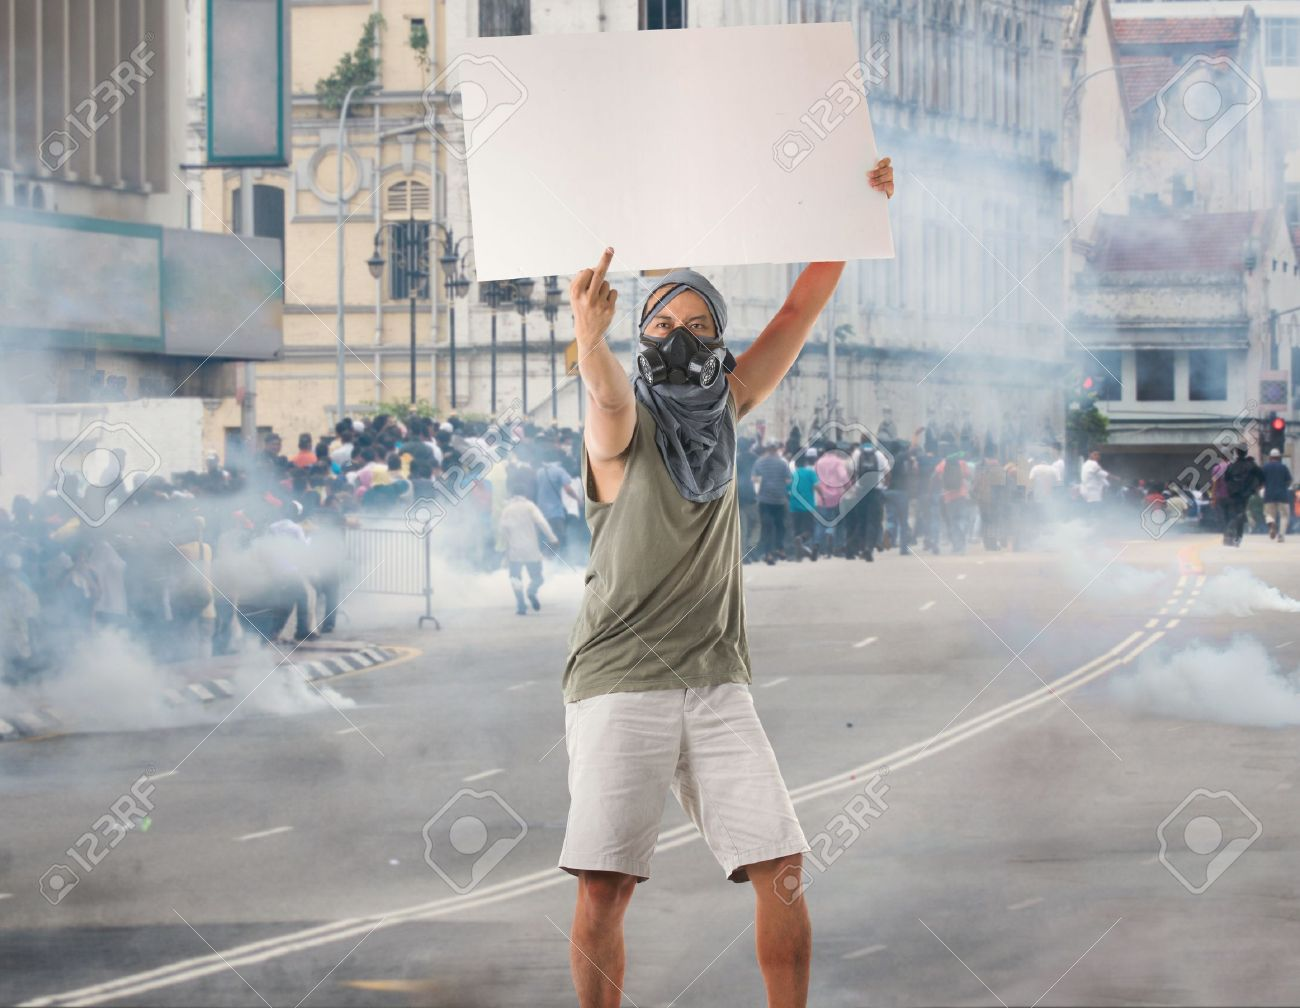 man in street protest with blank cardboard, looks great for advertistment with attitude Stock Photo - 17046367